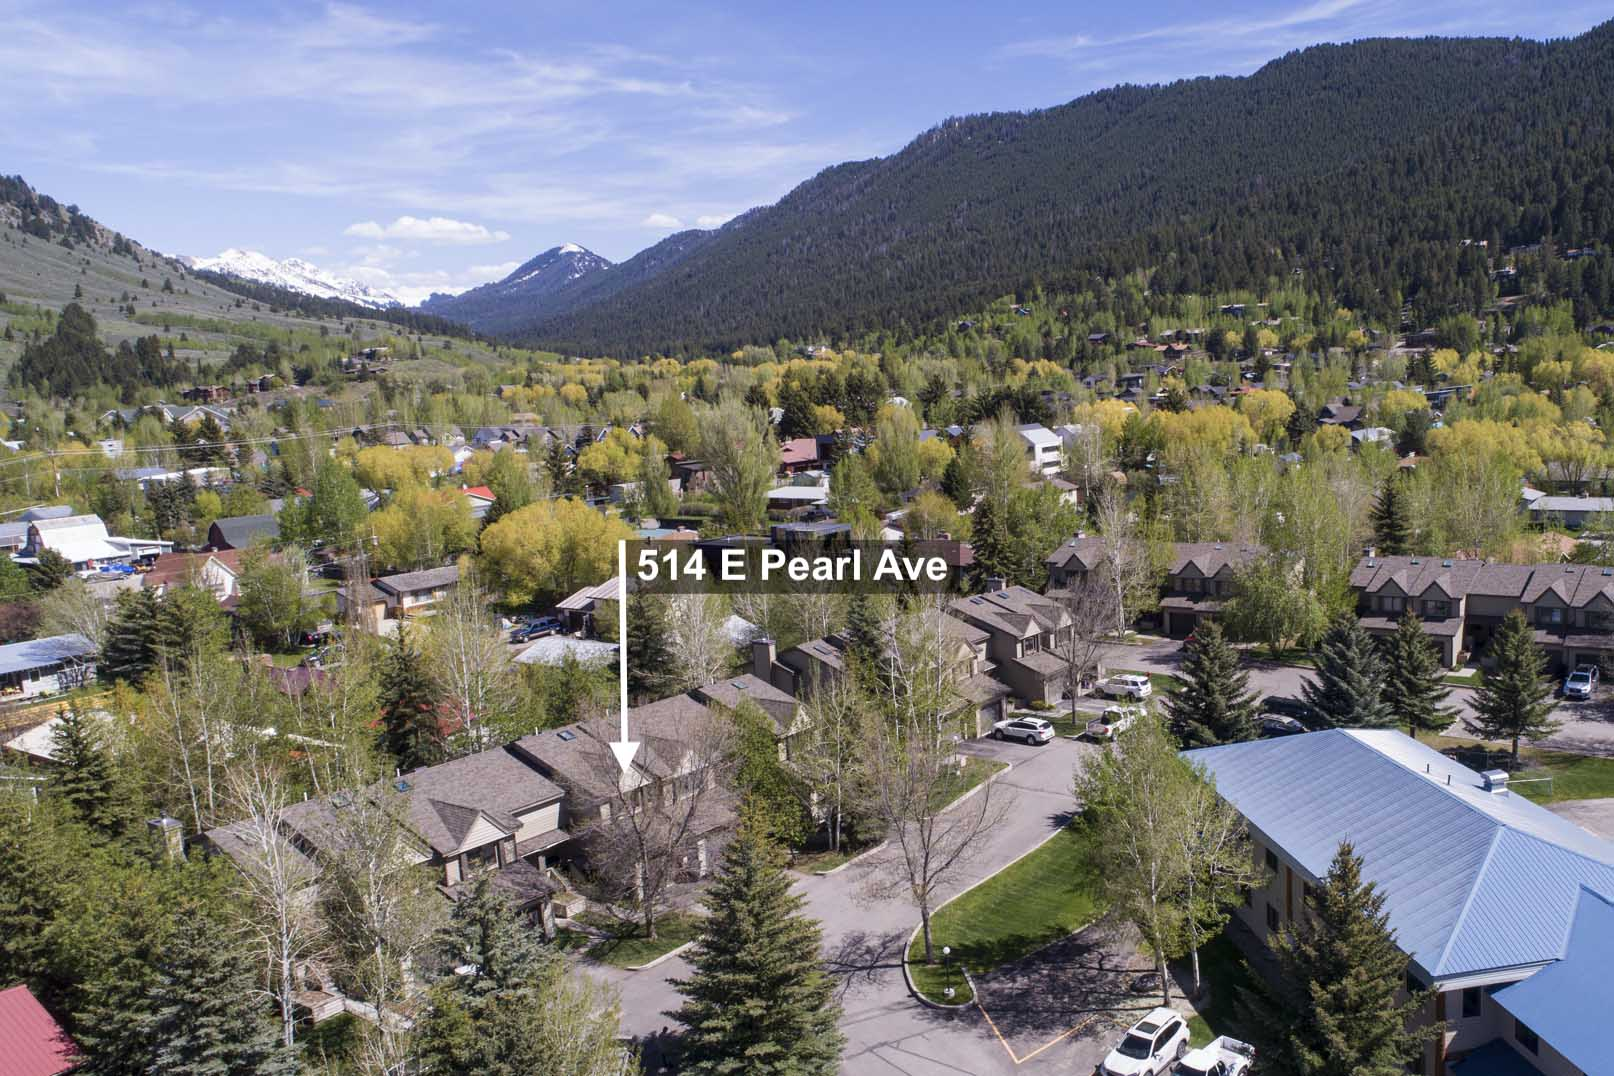 514 E Pearl Ave, Jackson WY Real Estate